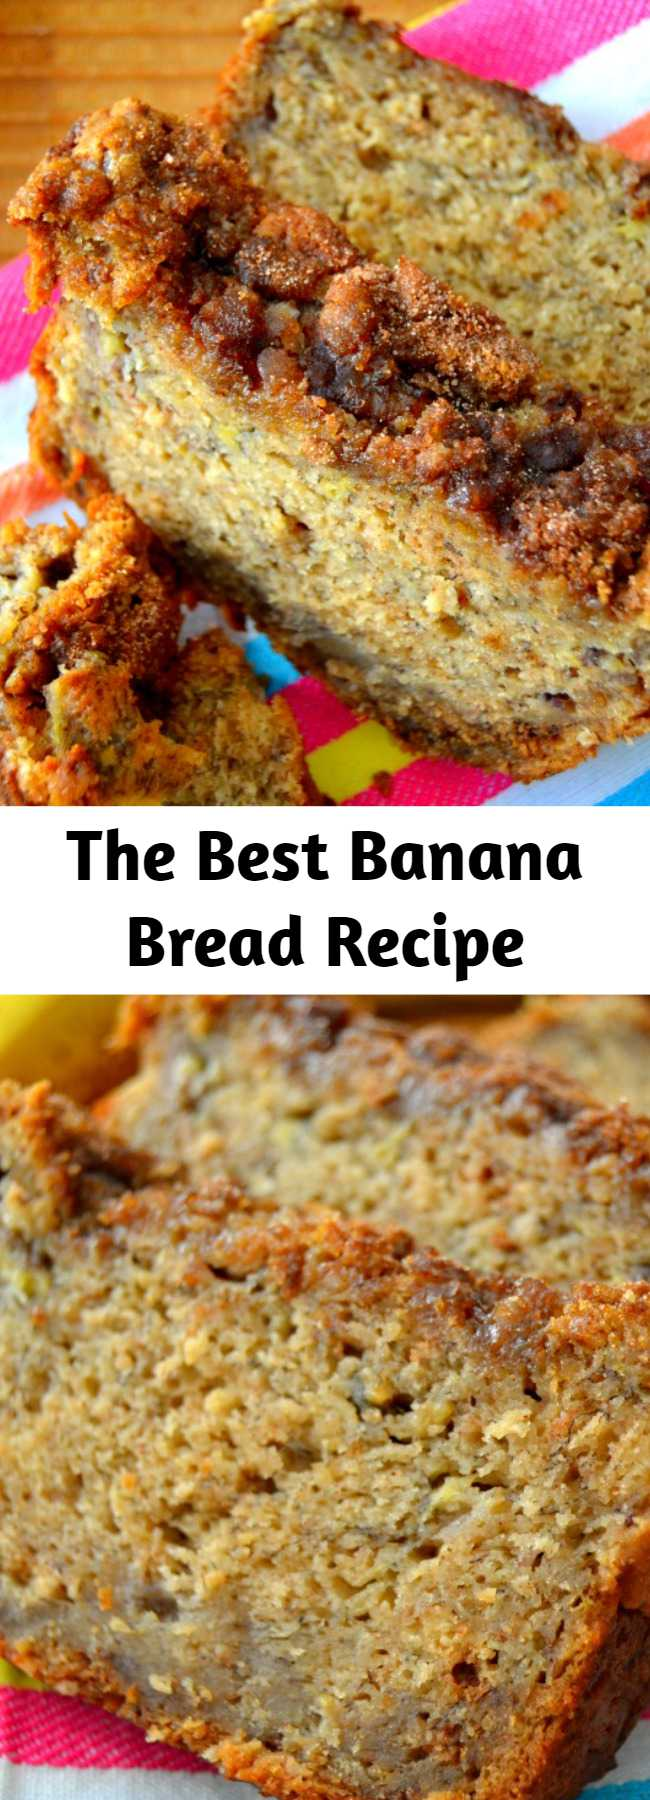 The Best Banana Bread Recipe - If you're tired of eating crumbly, dry, flavorless banana bread, you're in luck: this recipe is bursting with fresh bananas, is swirled with bits of cinnamon and is topped with the most irresistible brown sugar crust. Super soft and tender, moist without being wet.